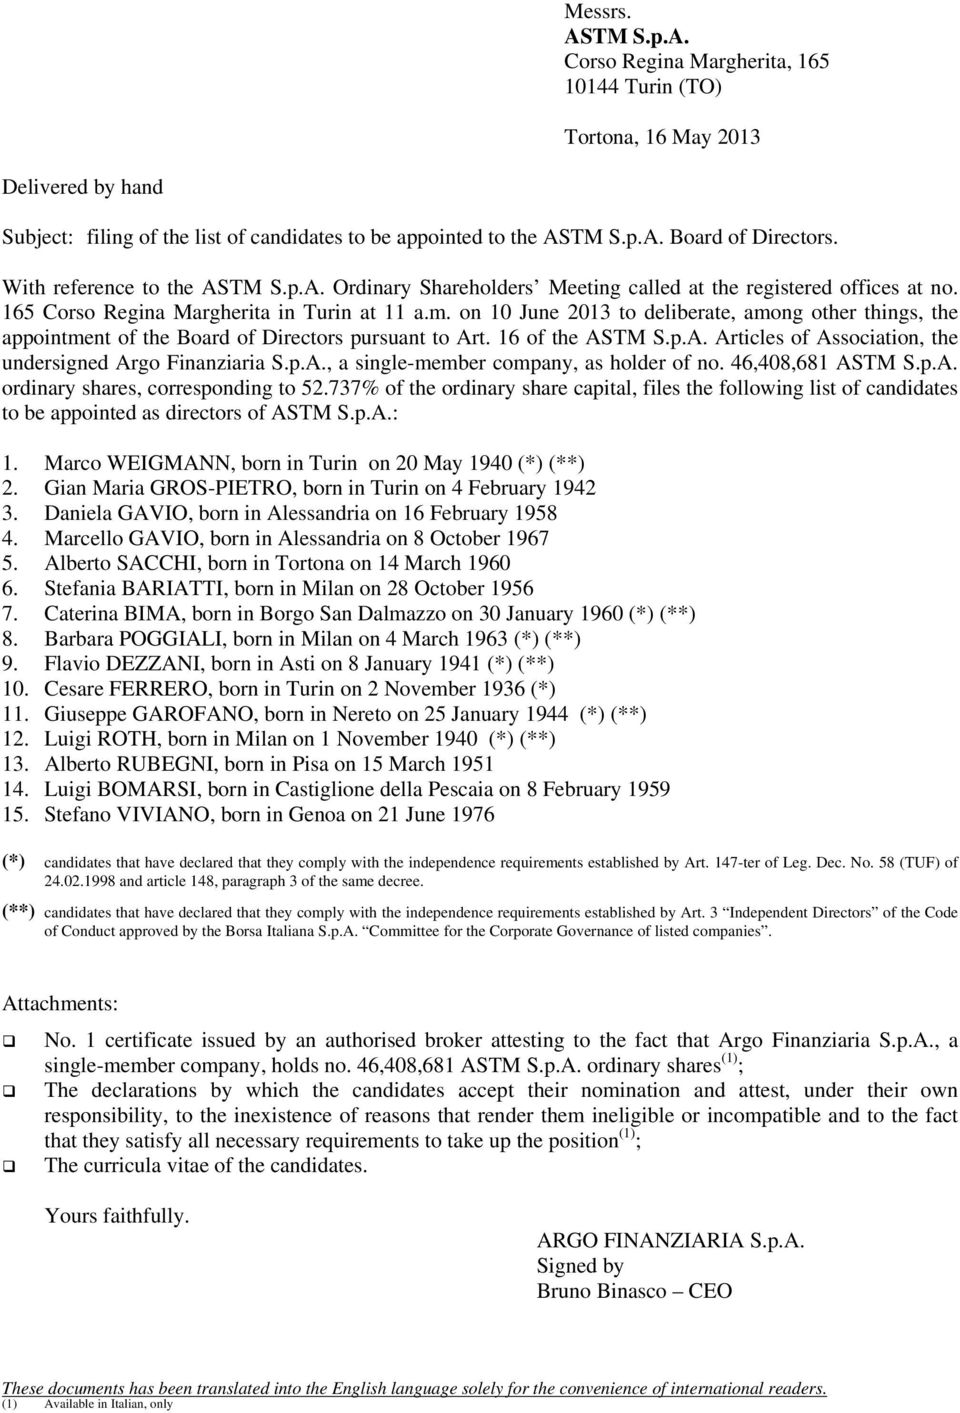 on 10 June 2013 to deliberate, among other things, the appointment of the Board of Directors pursuant to Art. 16 of the ASTM S.p.A. Articles of Association, the undersigned Argo Finanziaria S.p.A., a single-member company, as holder of no.